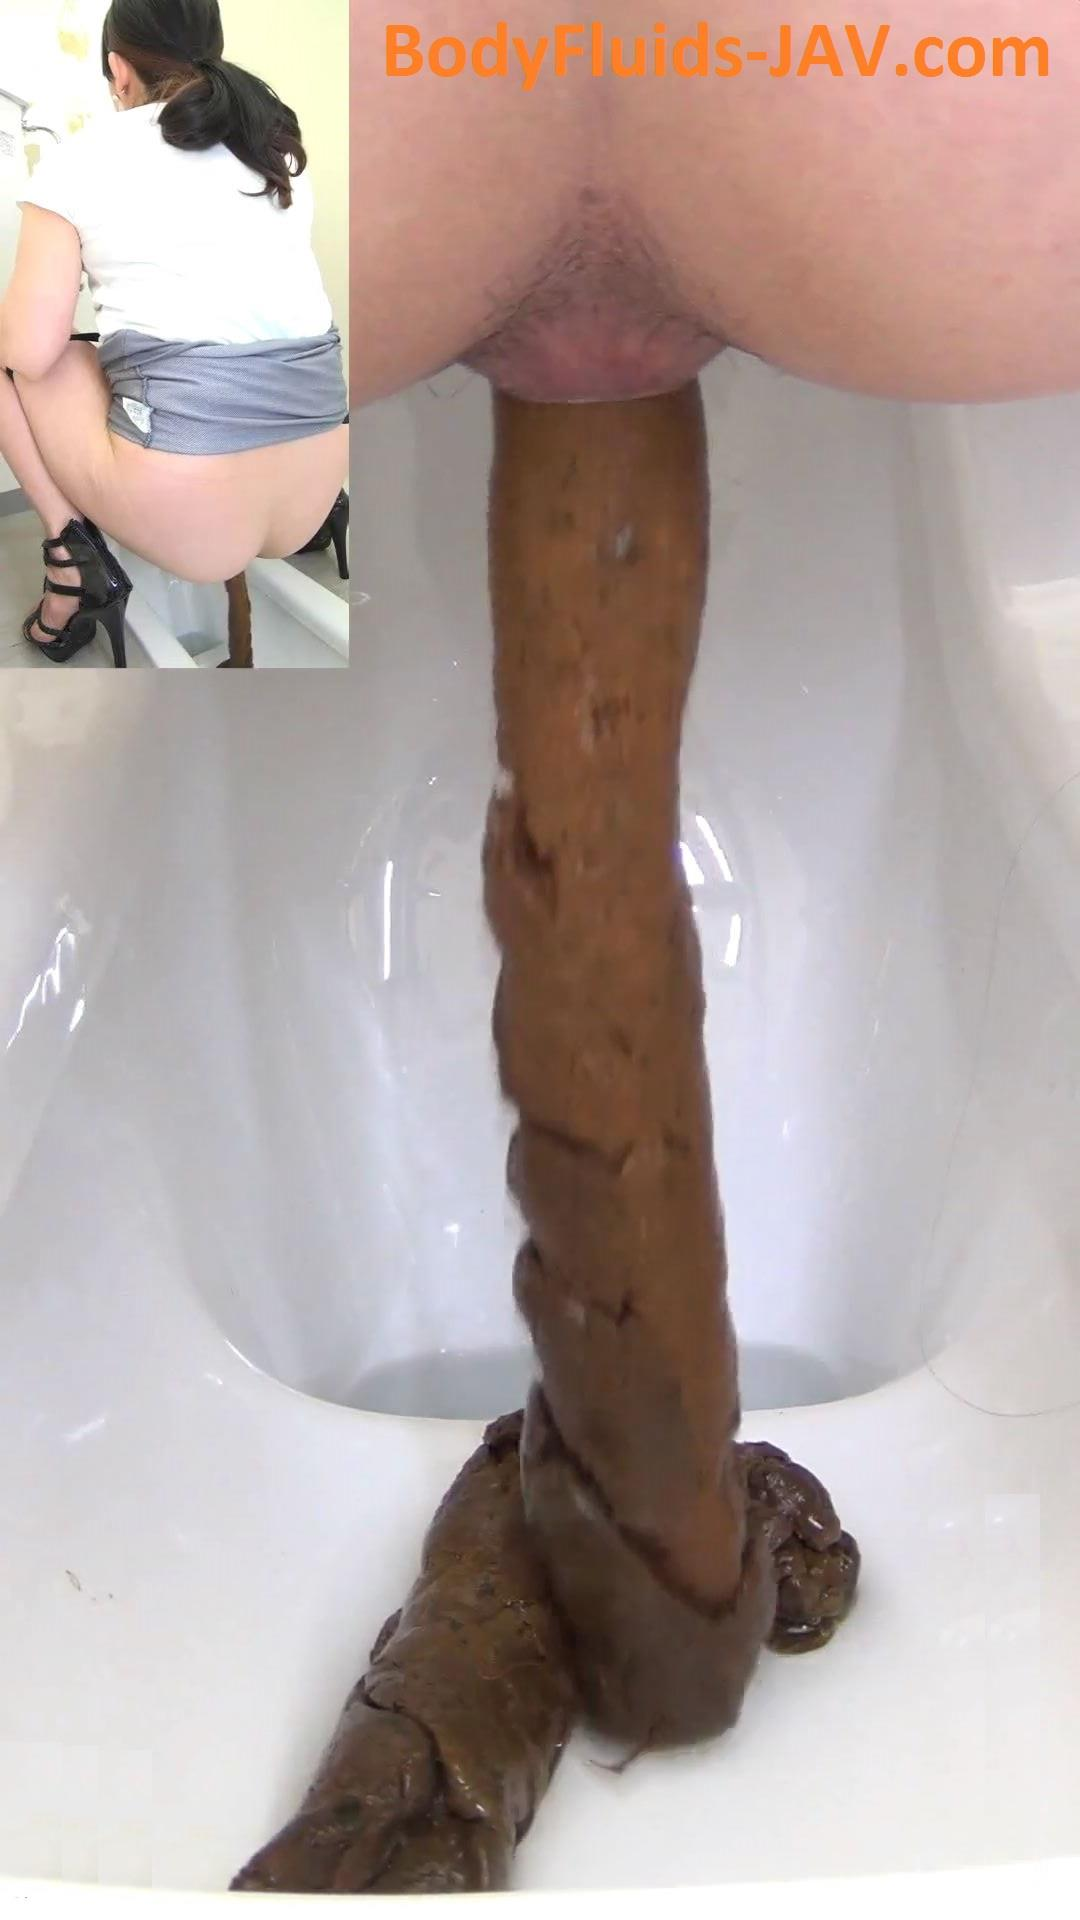 BFFF-31 Pooping girls in toilet with hidden amera. (HD 1080p)